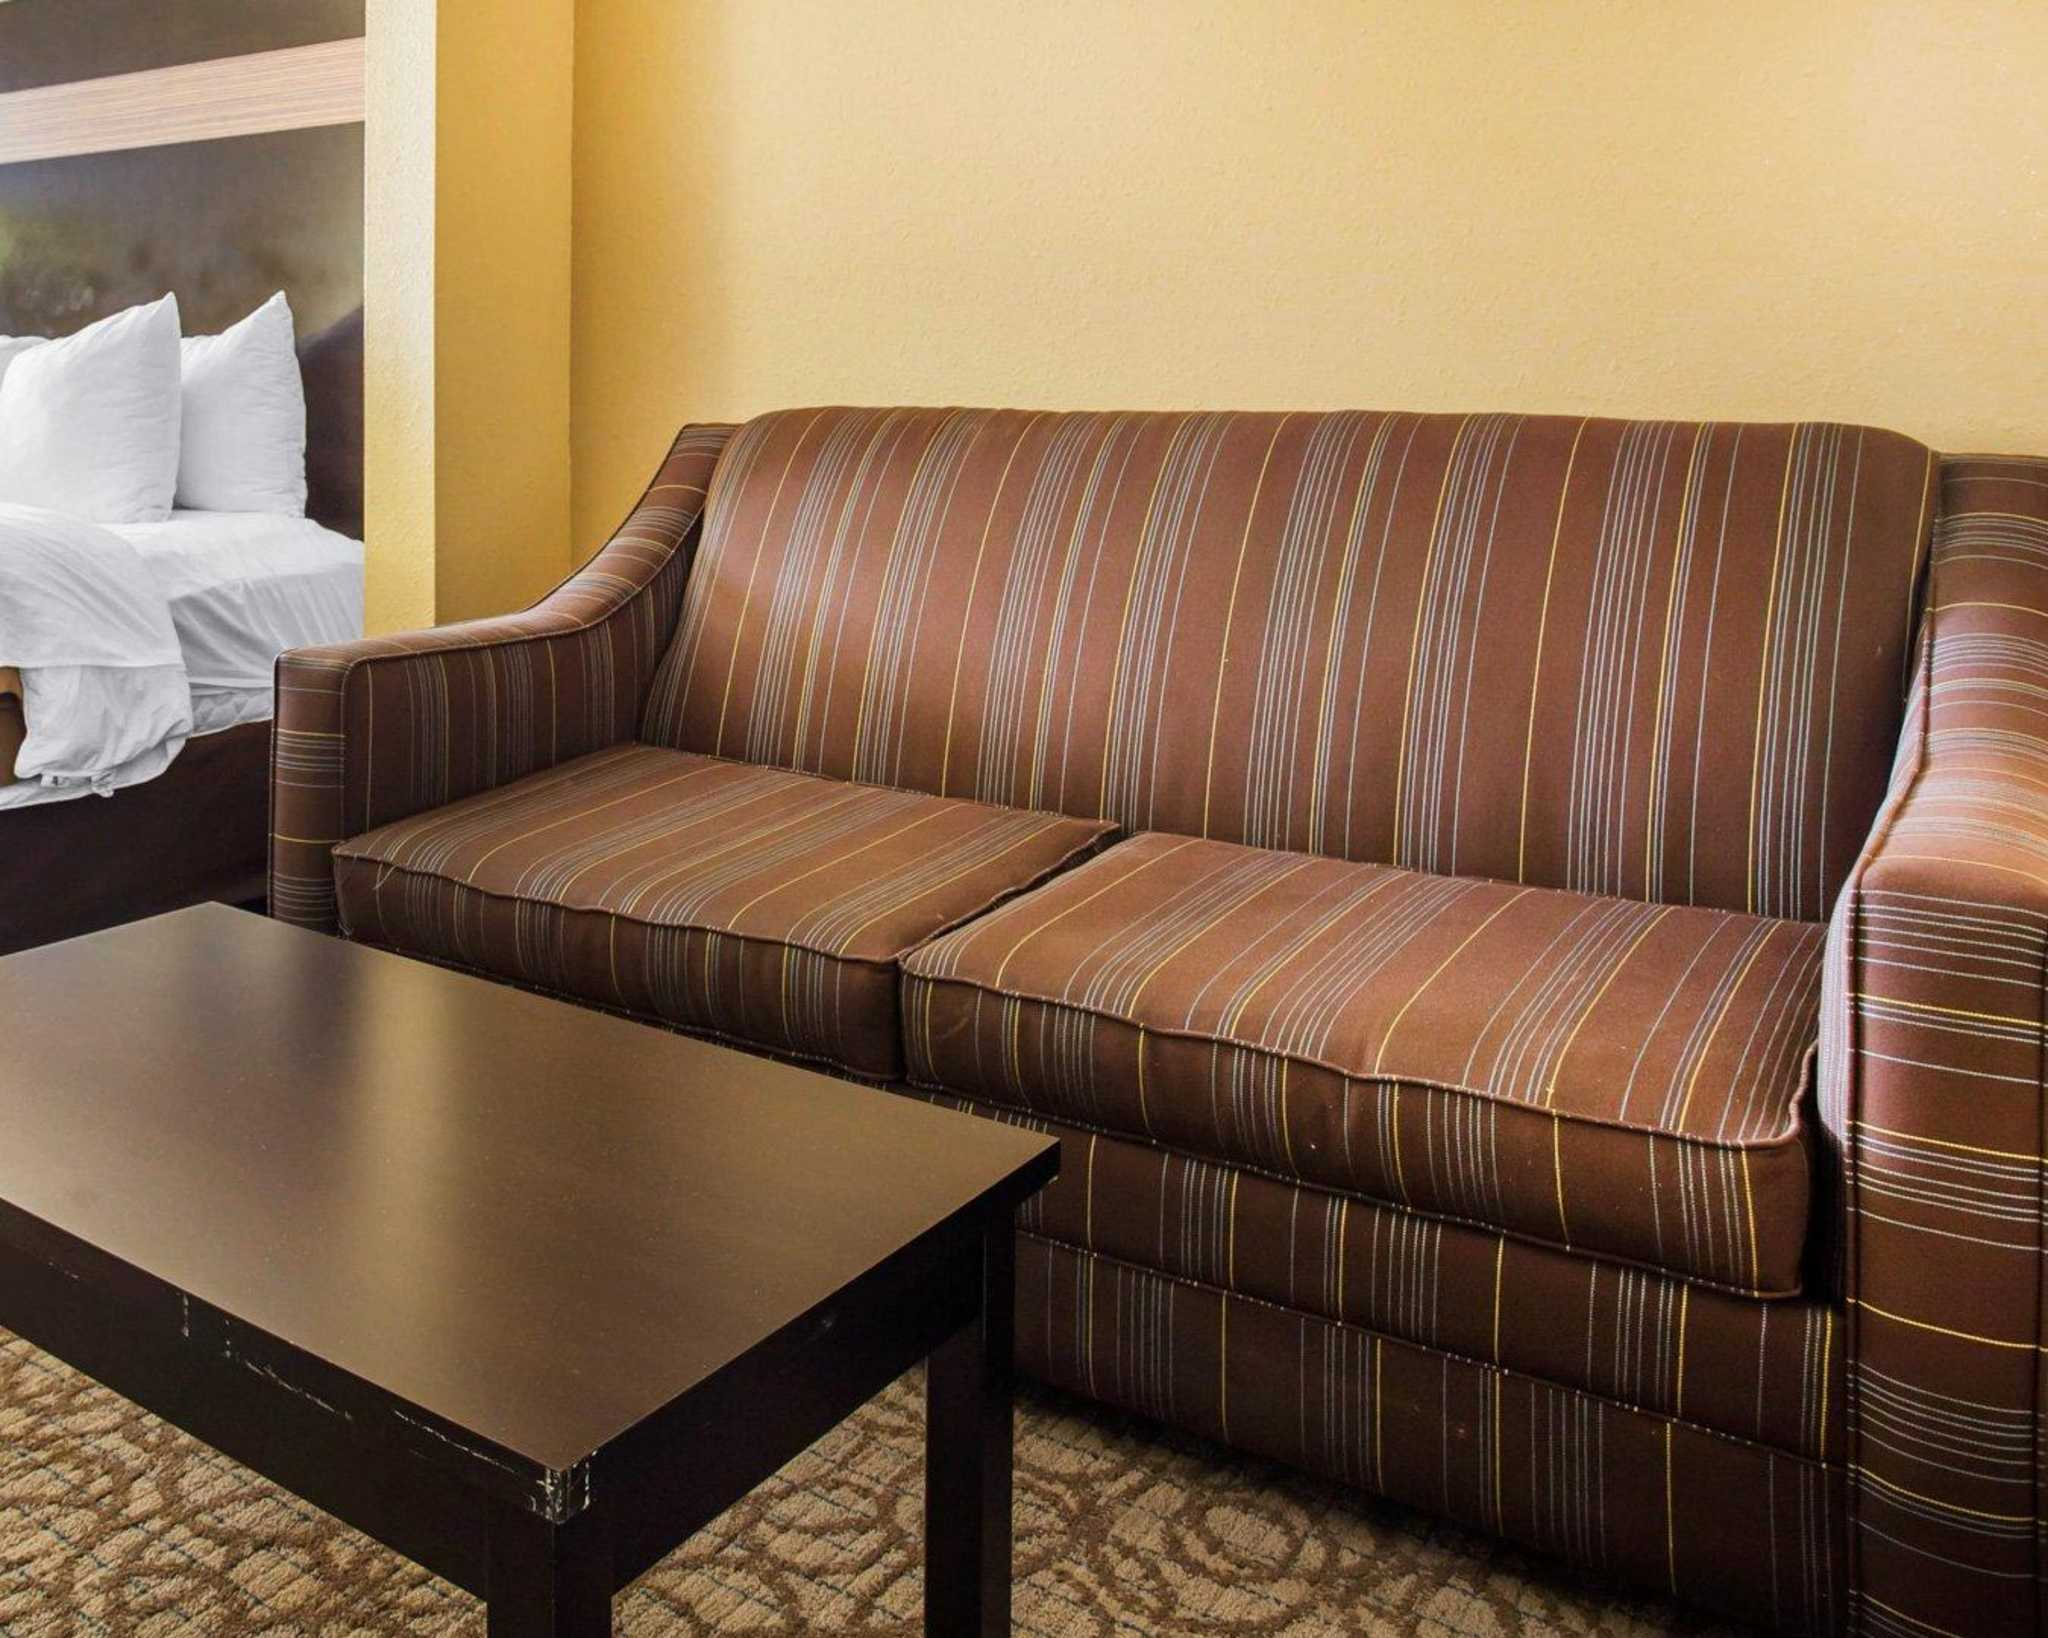 Comfort Inn & Suites at Stone Mountain image 33